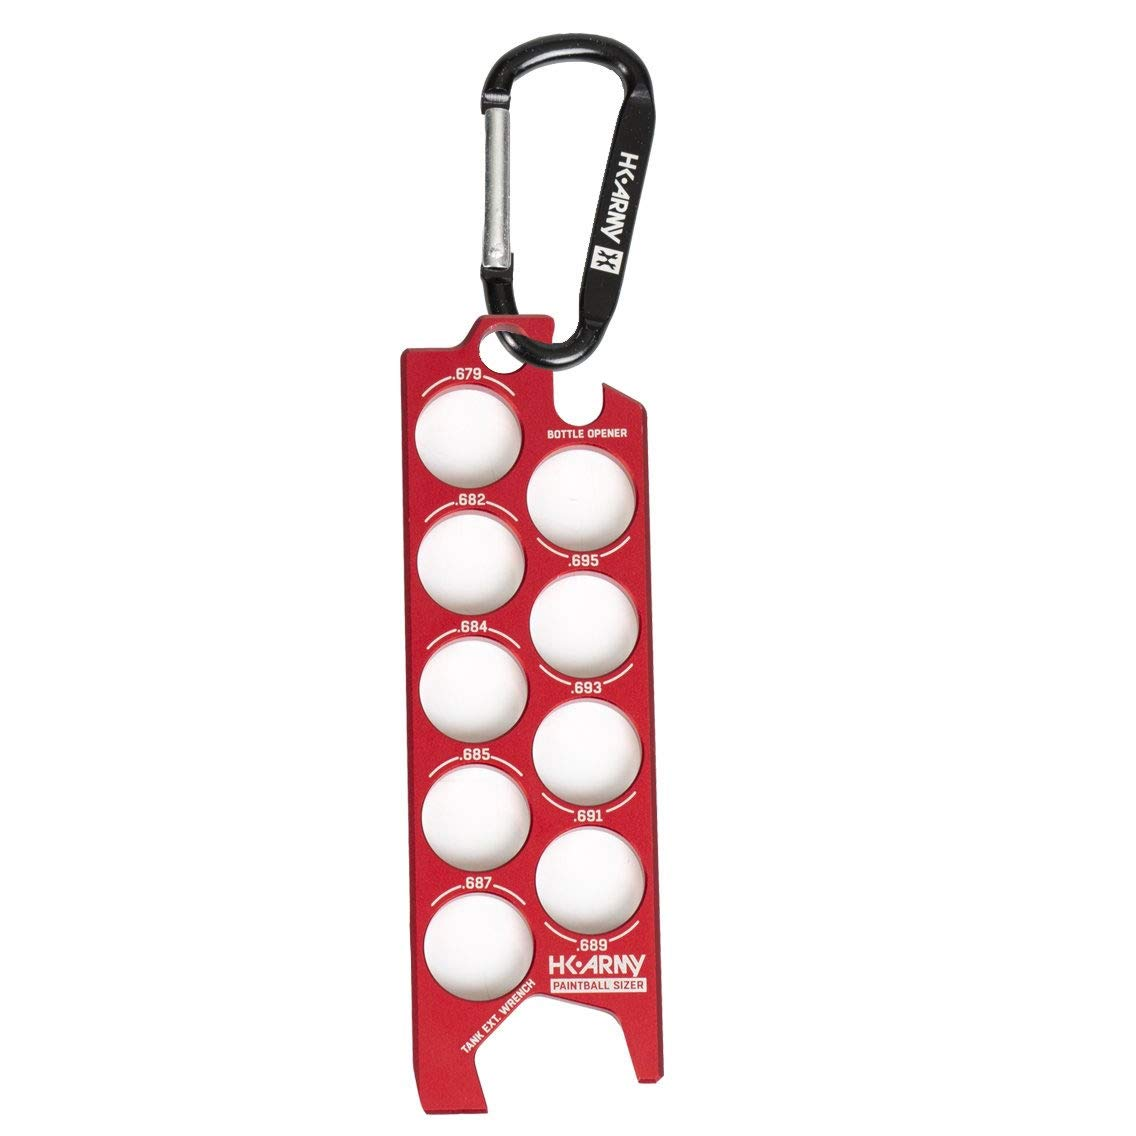 HK Army Ball Sizer Guide (Red) by HK Army